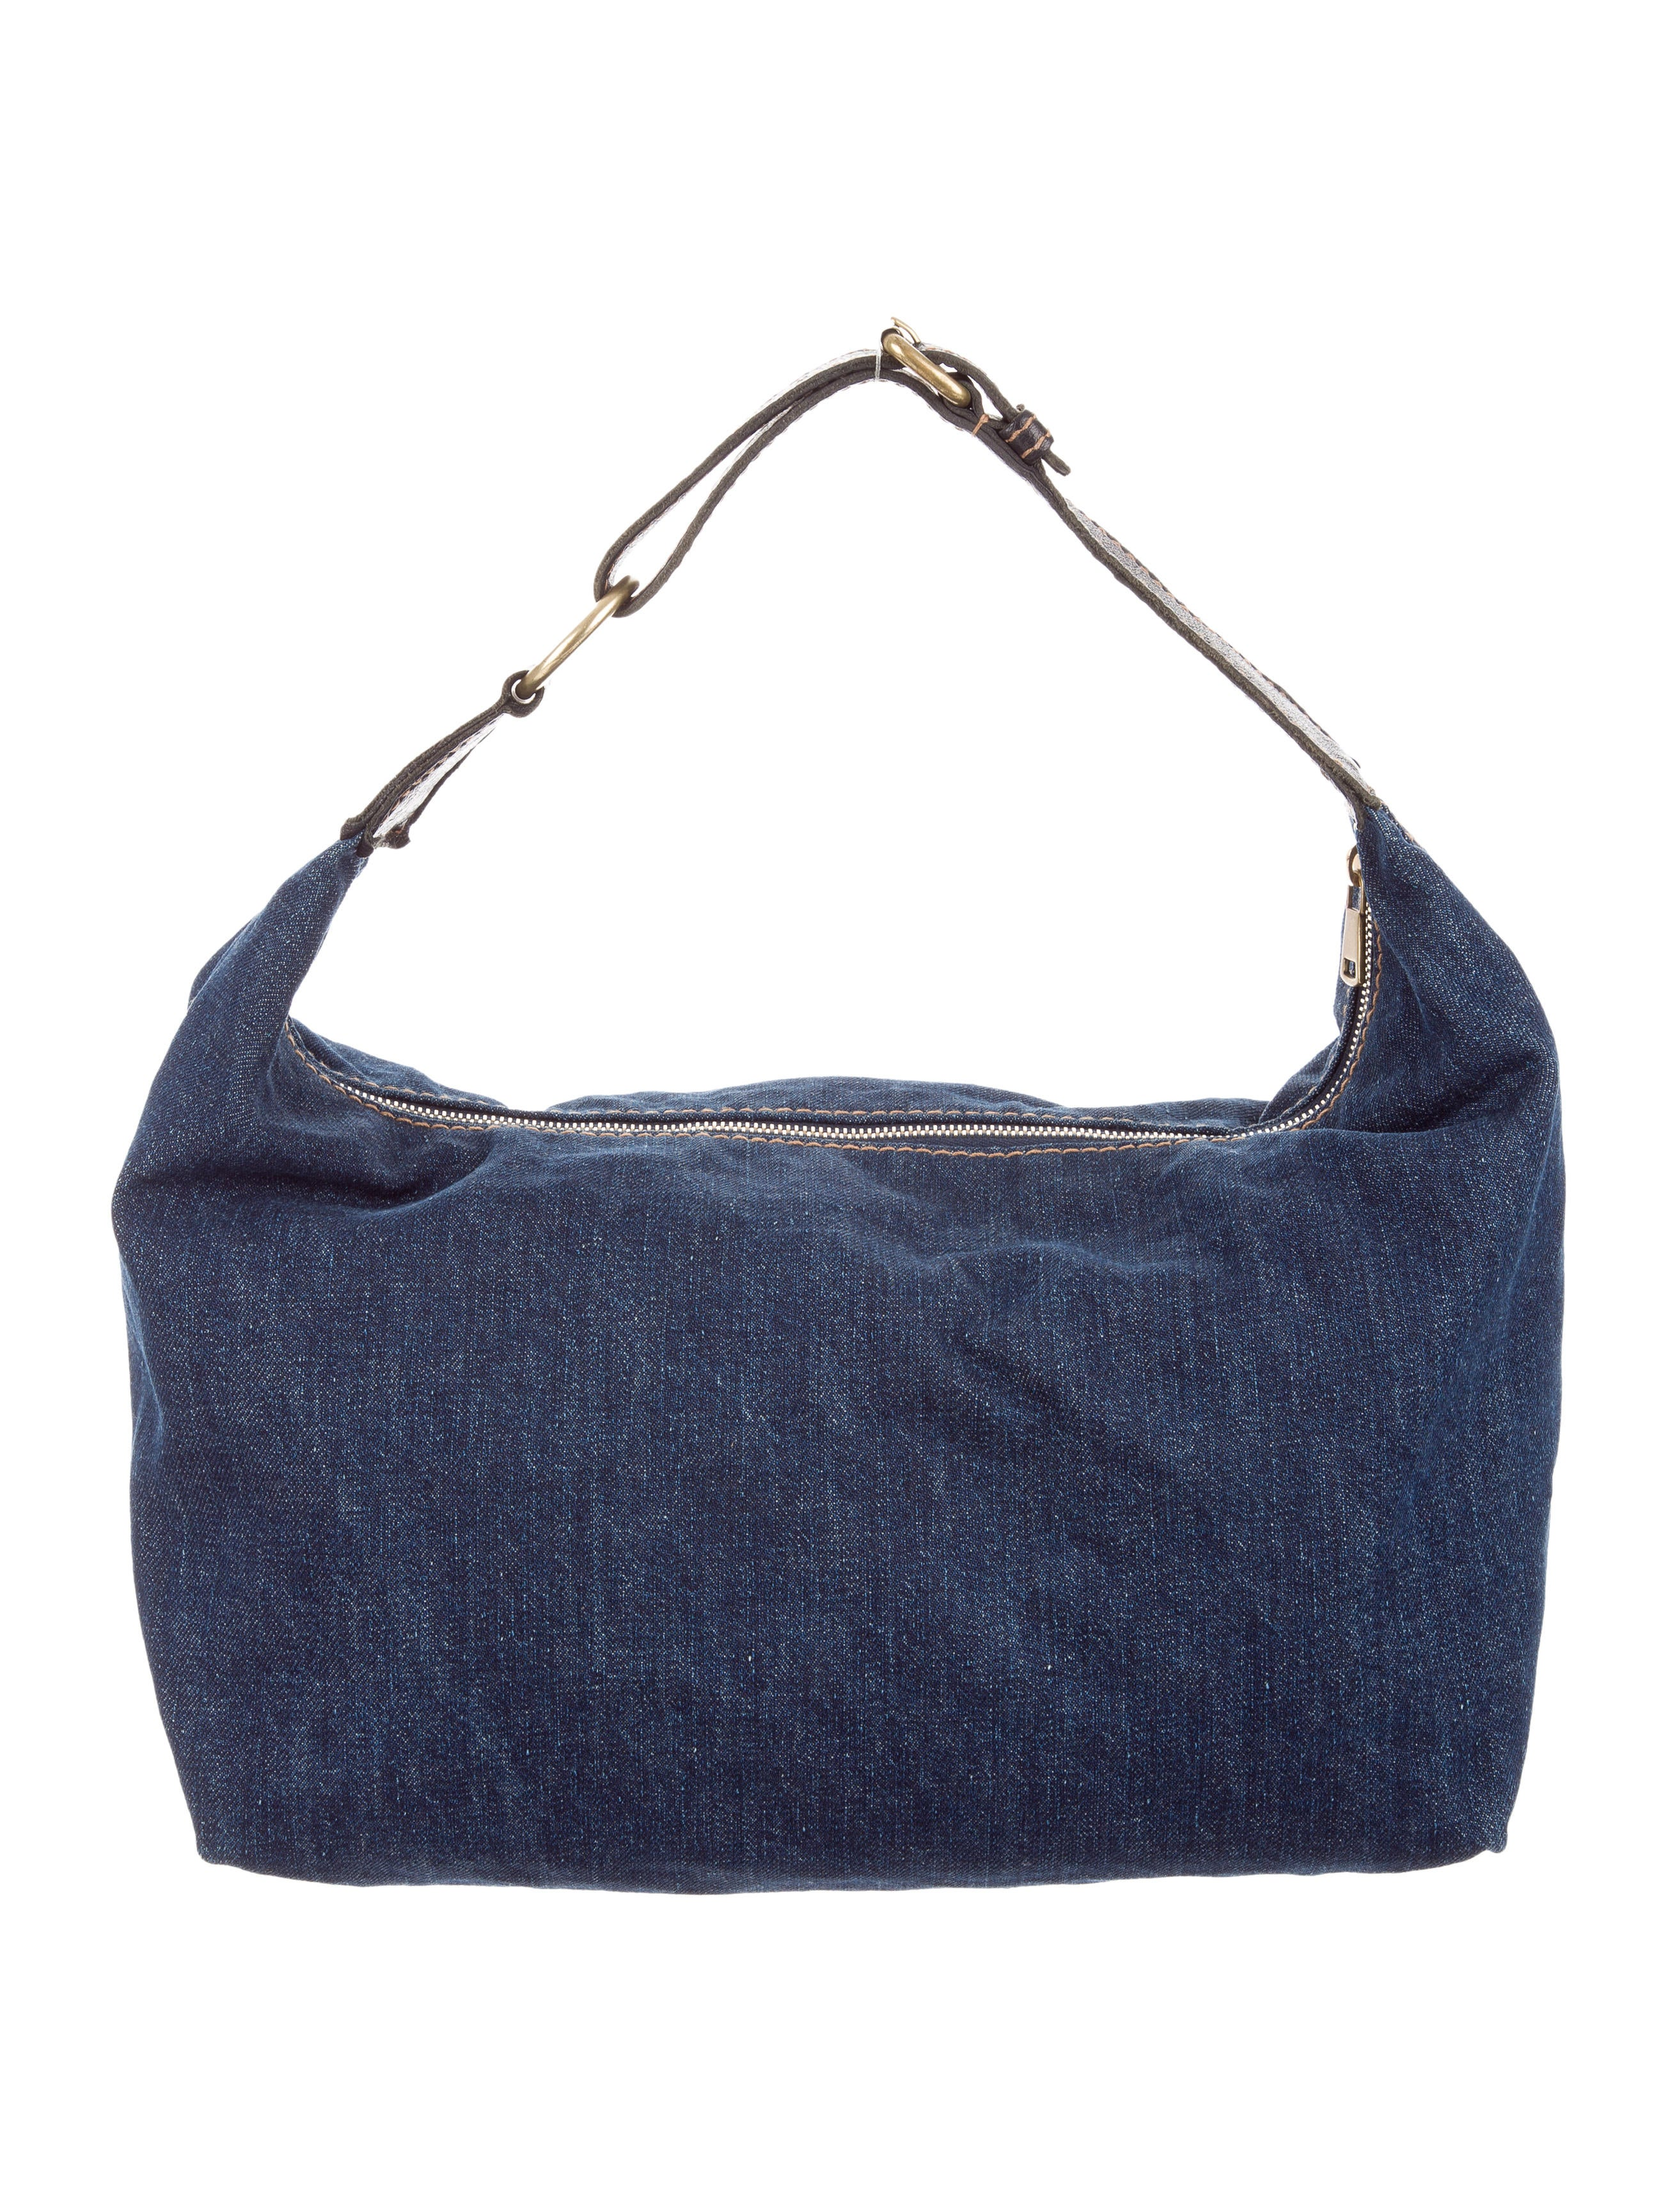 Yves Saint Laurent Denim Shoulder Bag Handbags